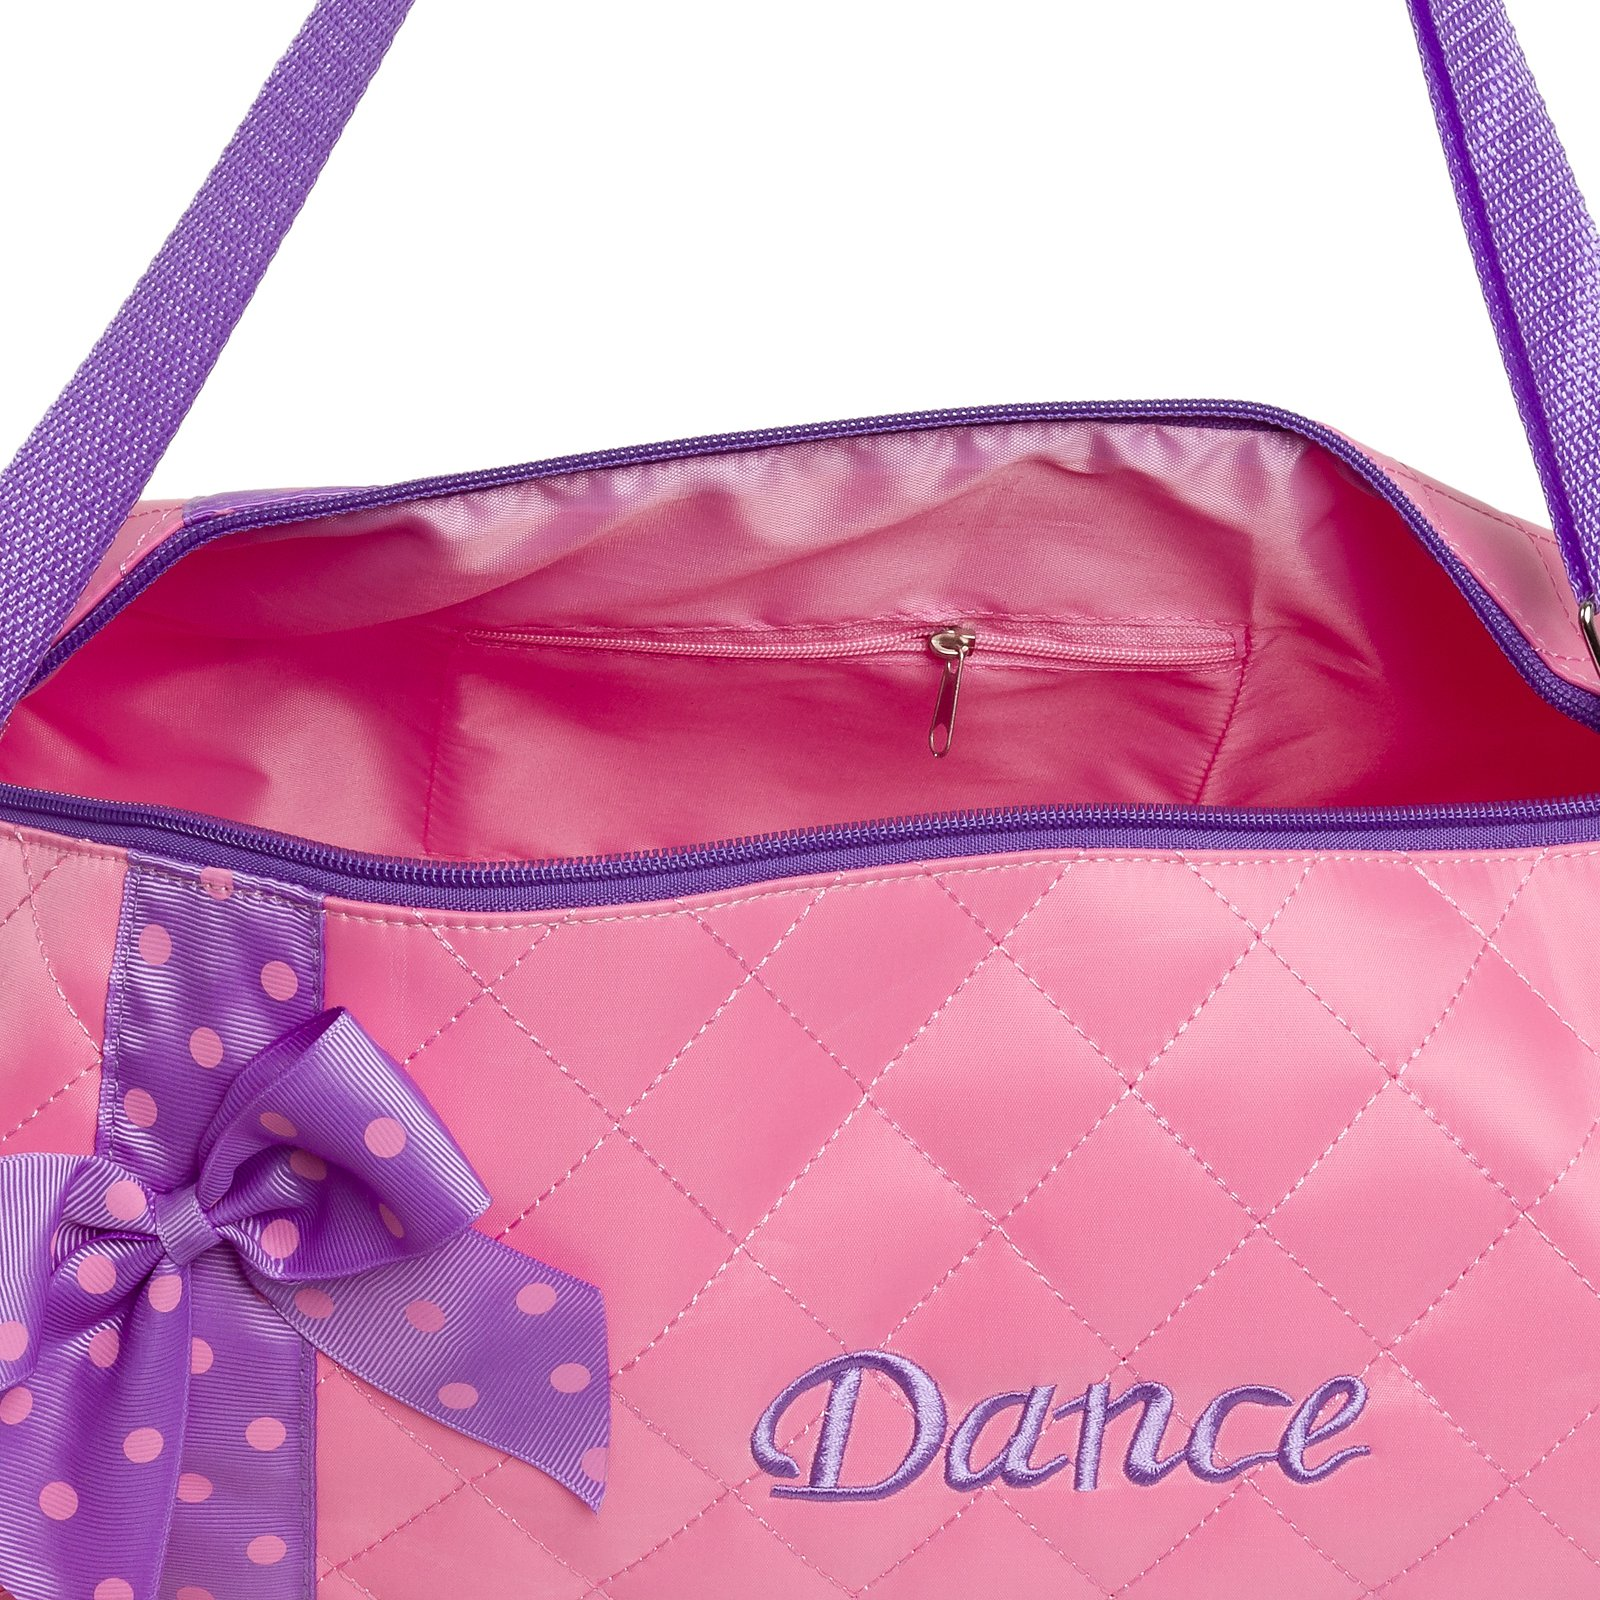 Silver Lilly Girls Dance Bag - Quilted Duffle Bag w/Lavender Bow (Light Pink) by Silver Lilly (Image #4)